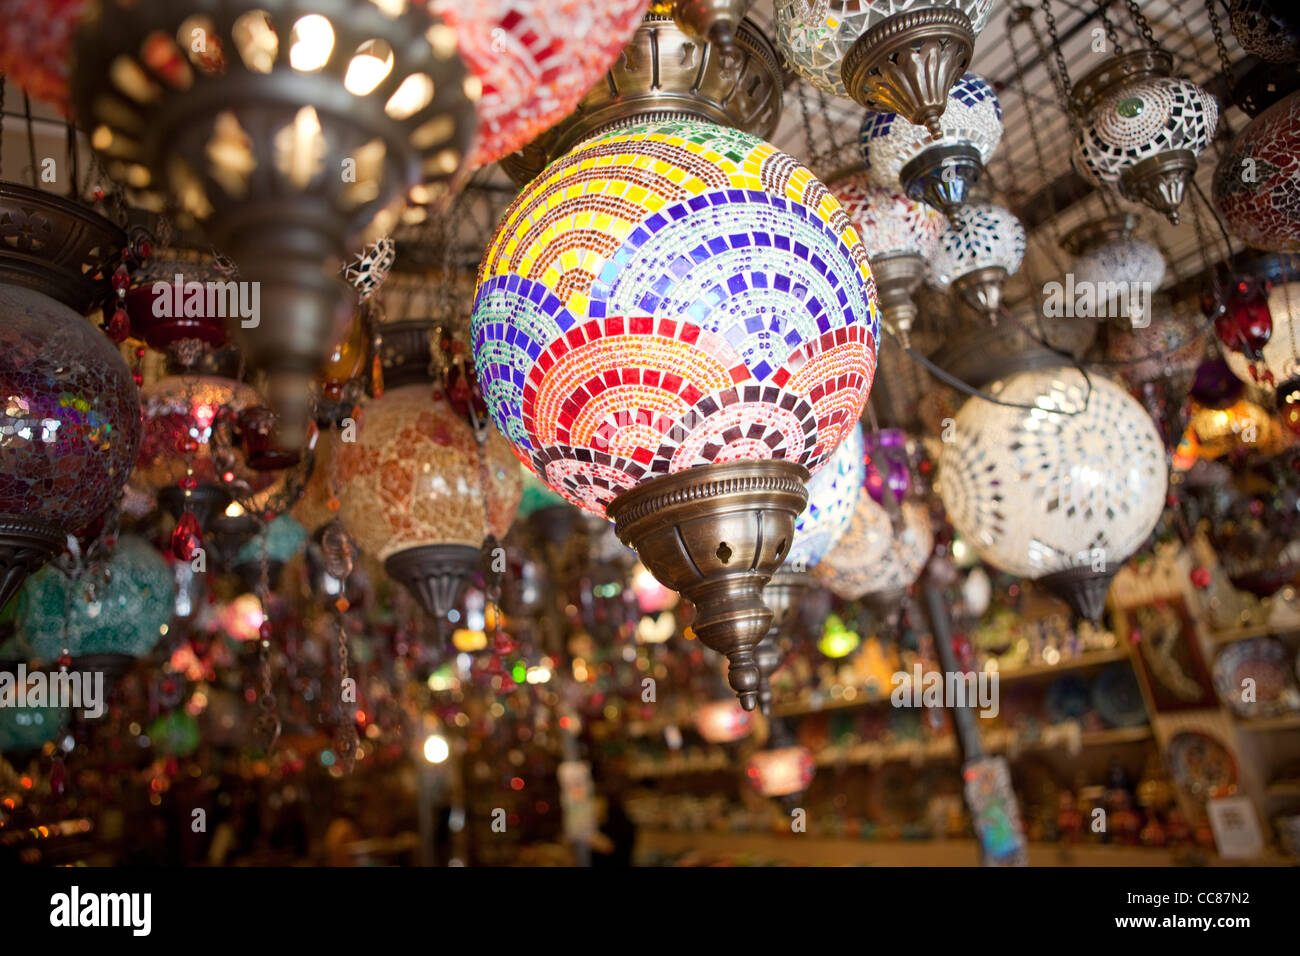 Lamps in a shop in Istanbul, Turkey. - Stock Image